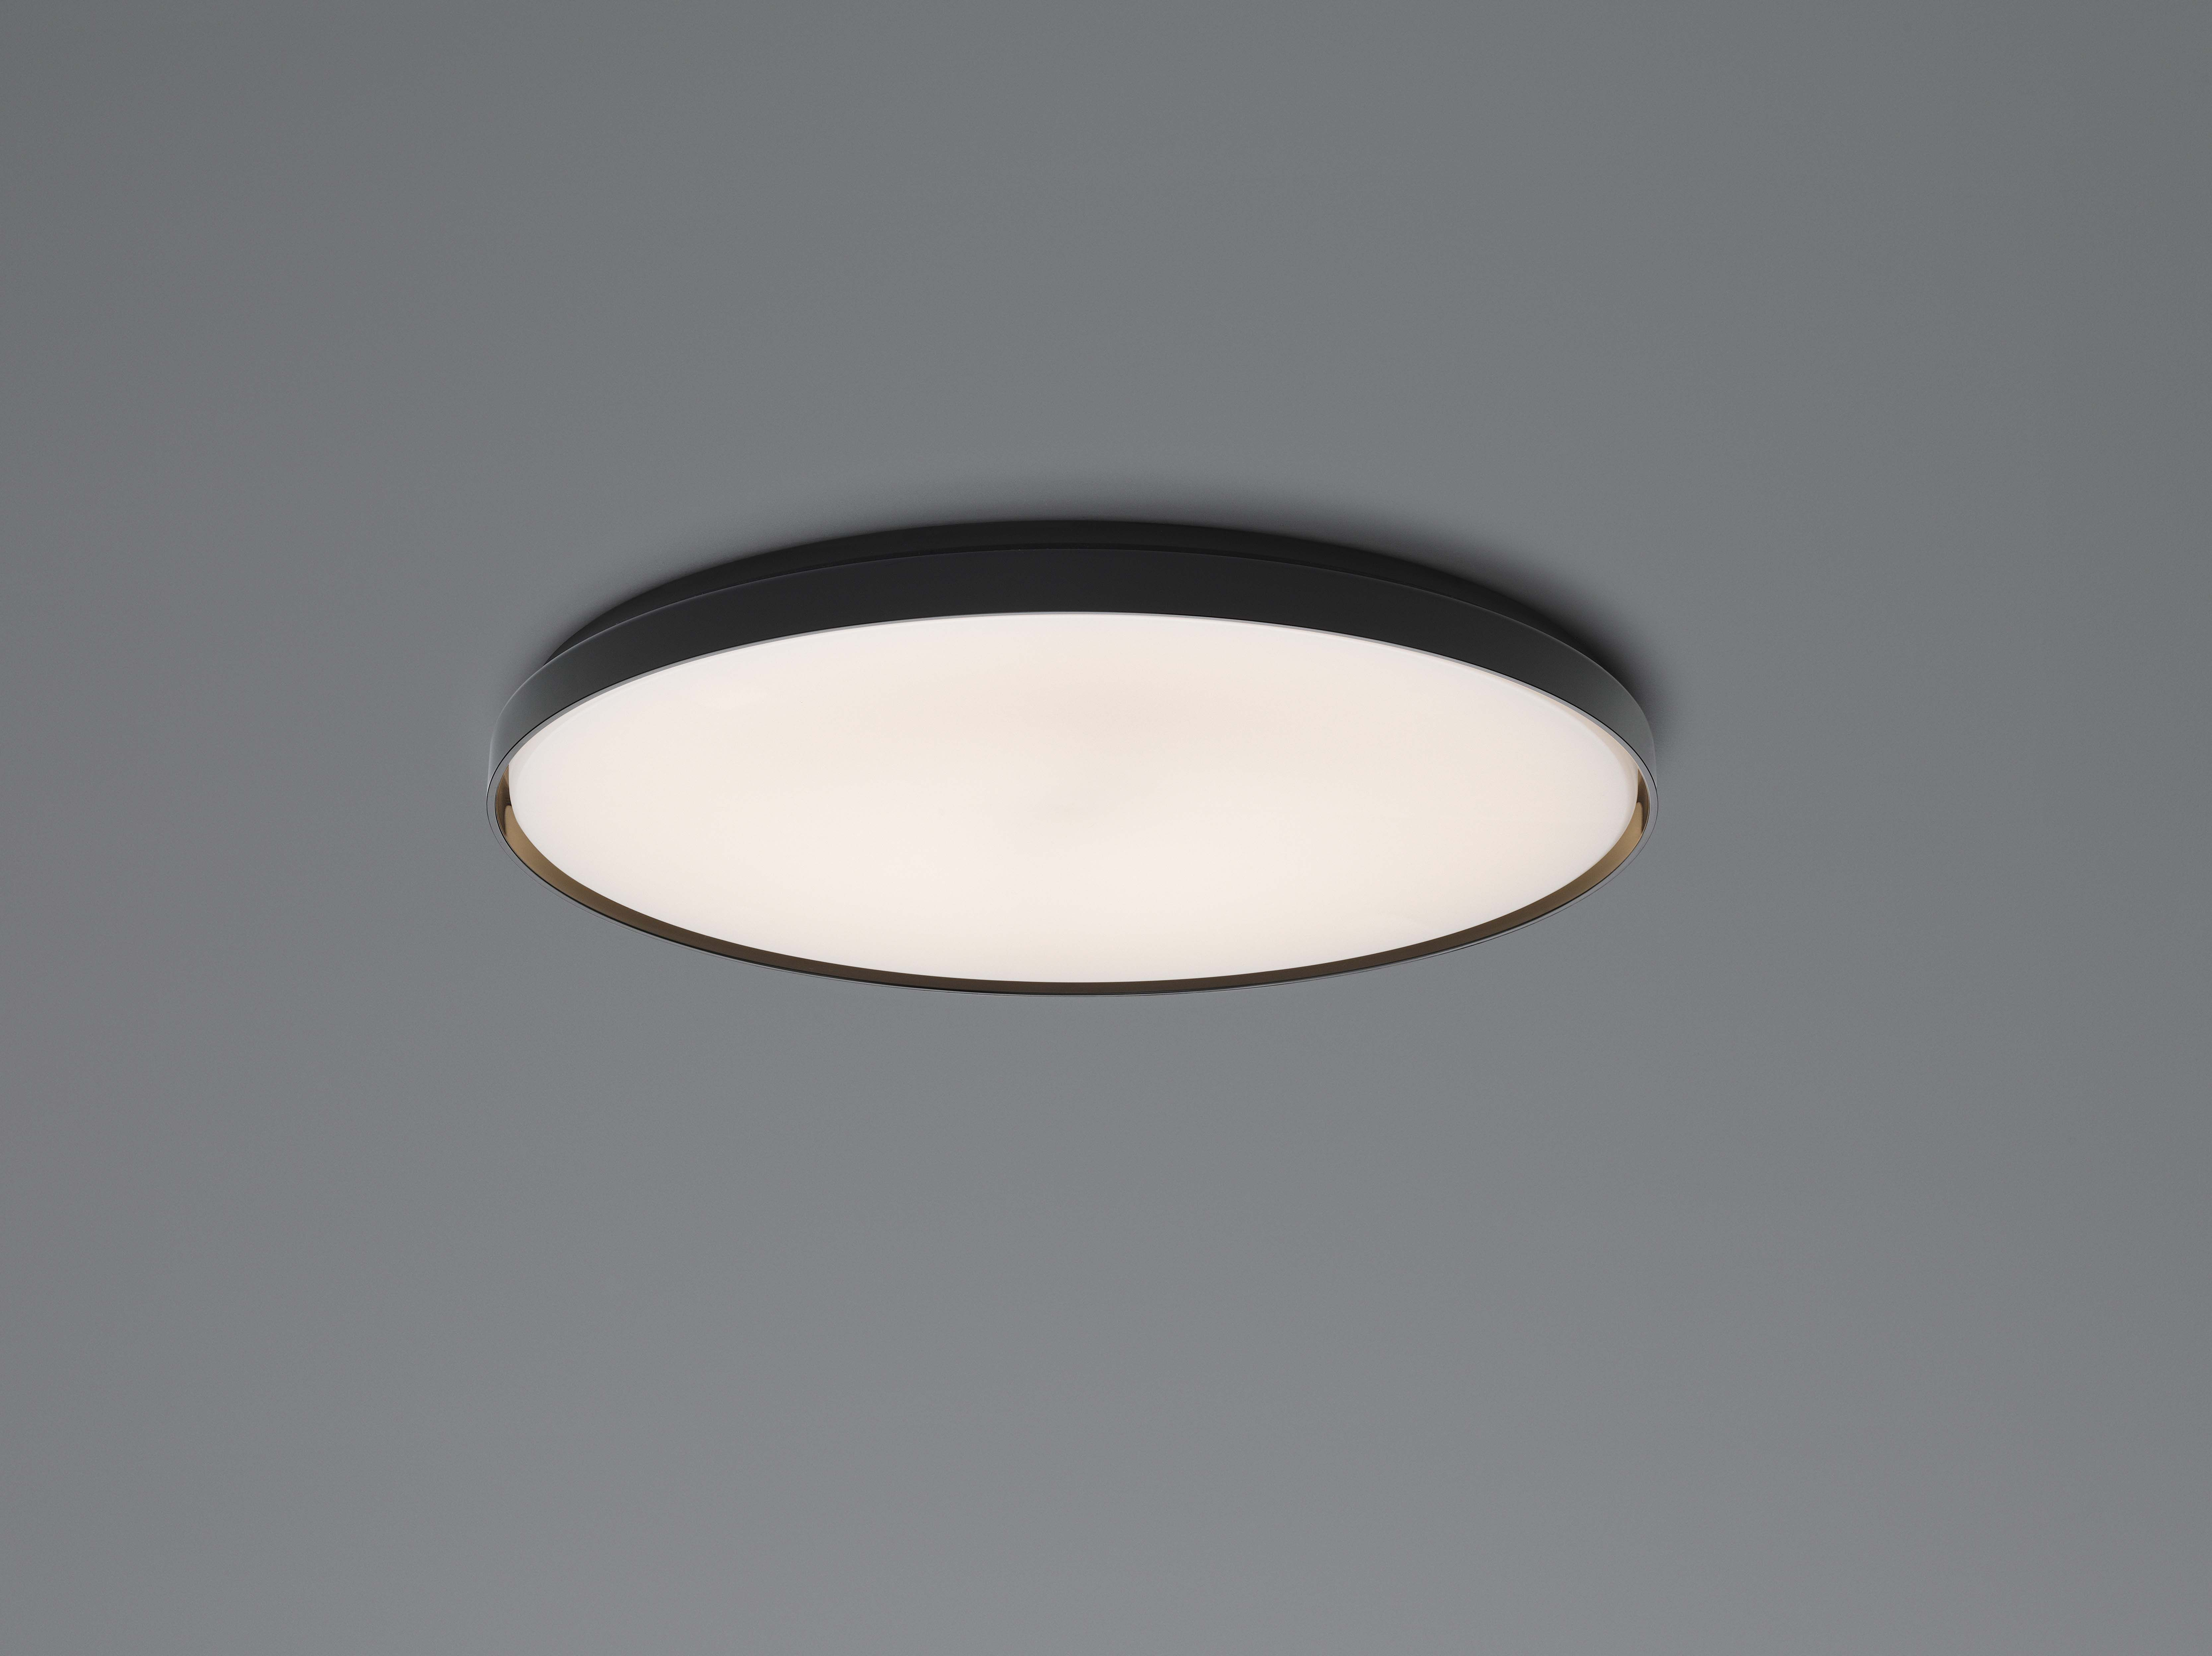 Spot Lampe Clara By Flos Ceiling Lamp Spot Loft Lampe Calm Home In 2019